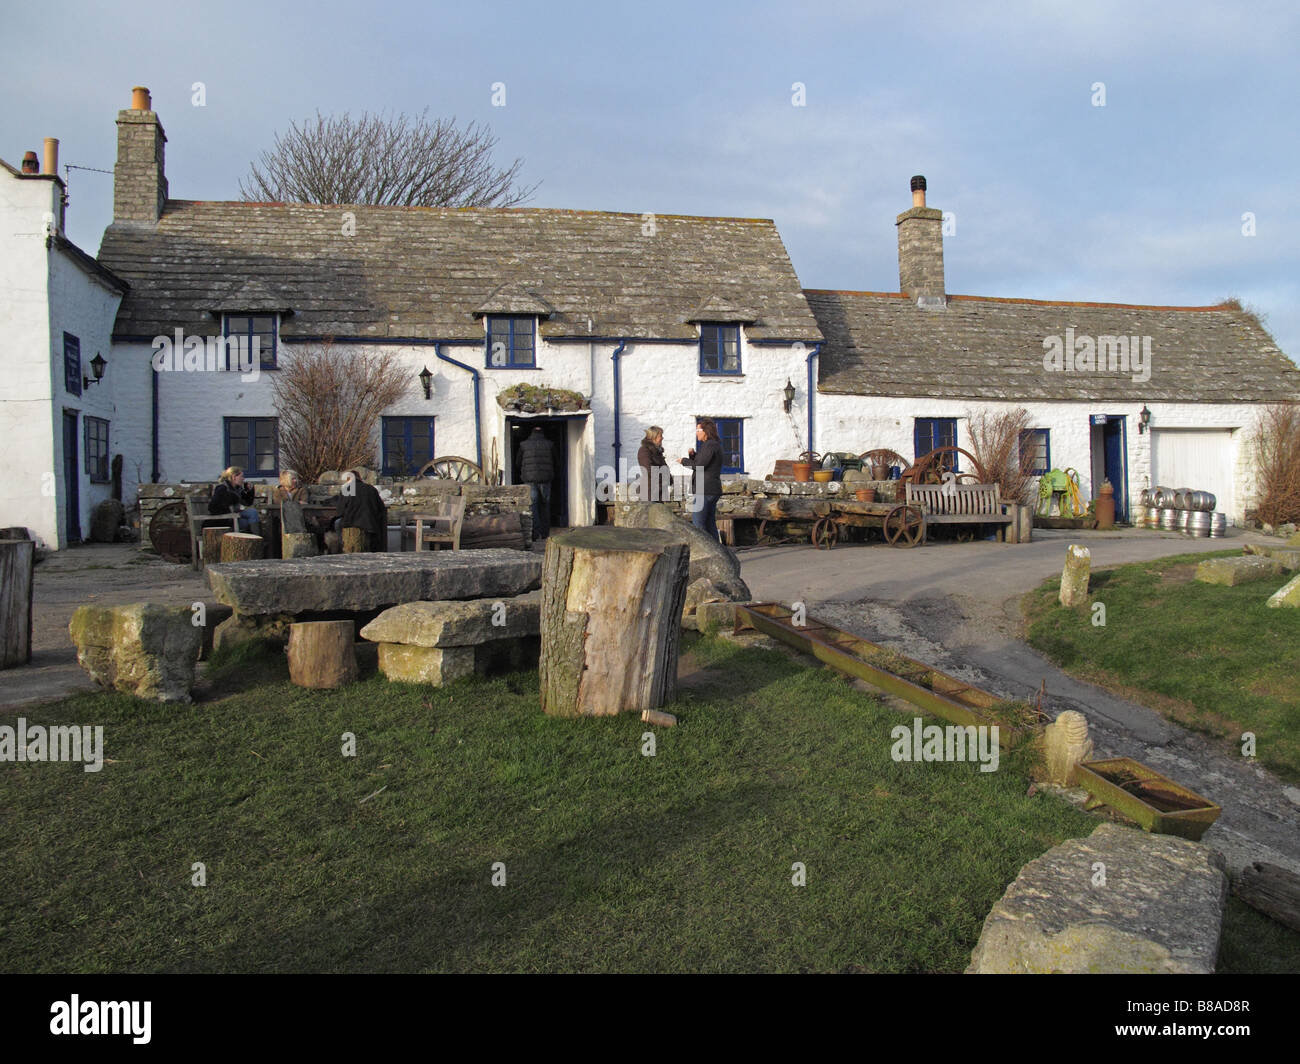 The Square and Compass village pub in Worth Matravers on the Isle of Purbeck, Dorset, England, UK - Stock Image